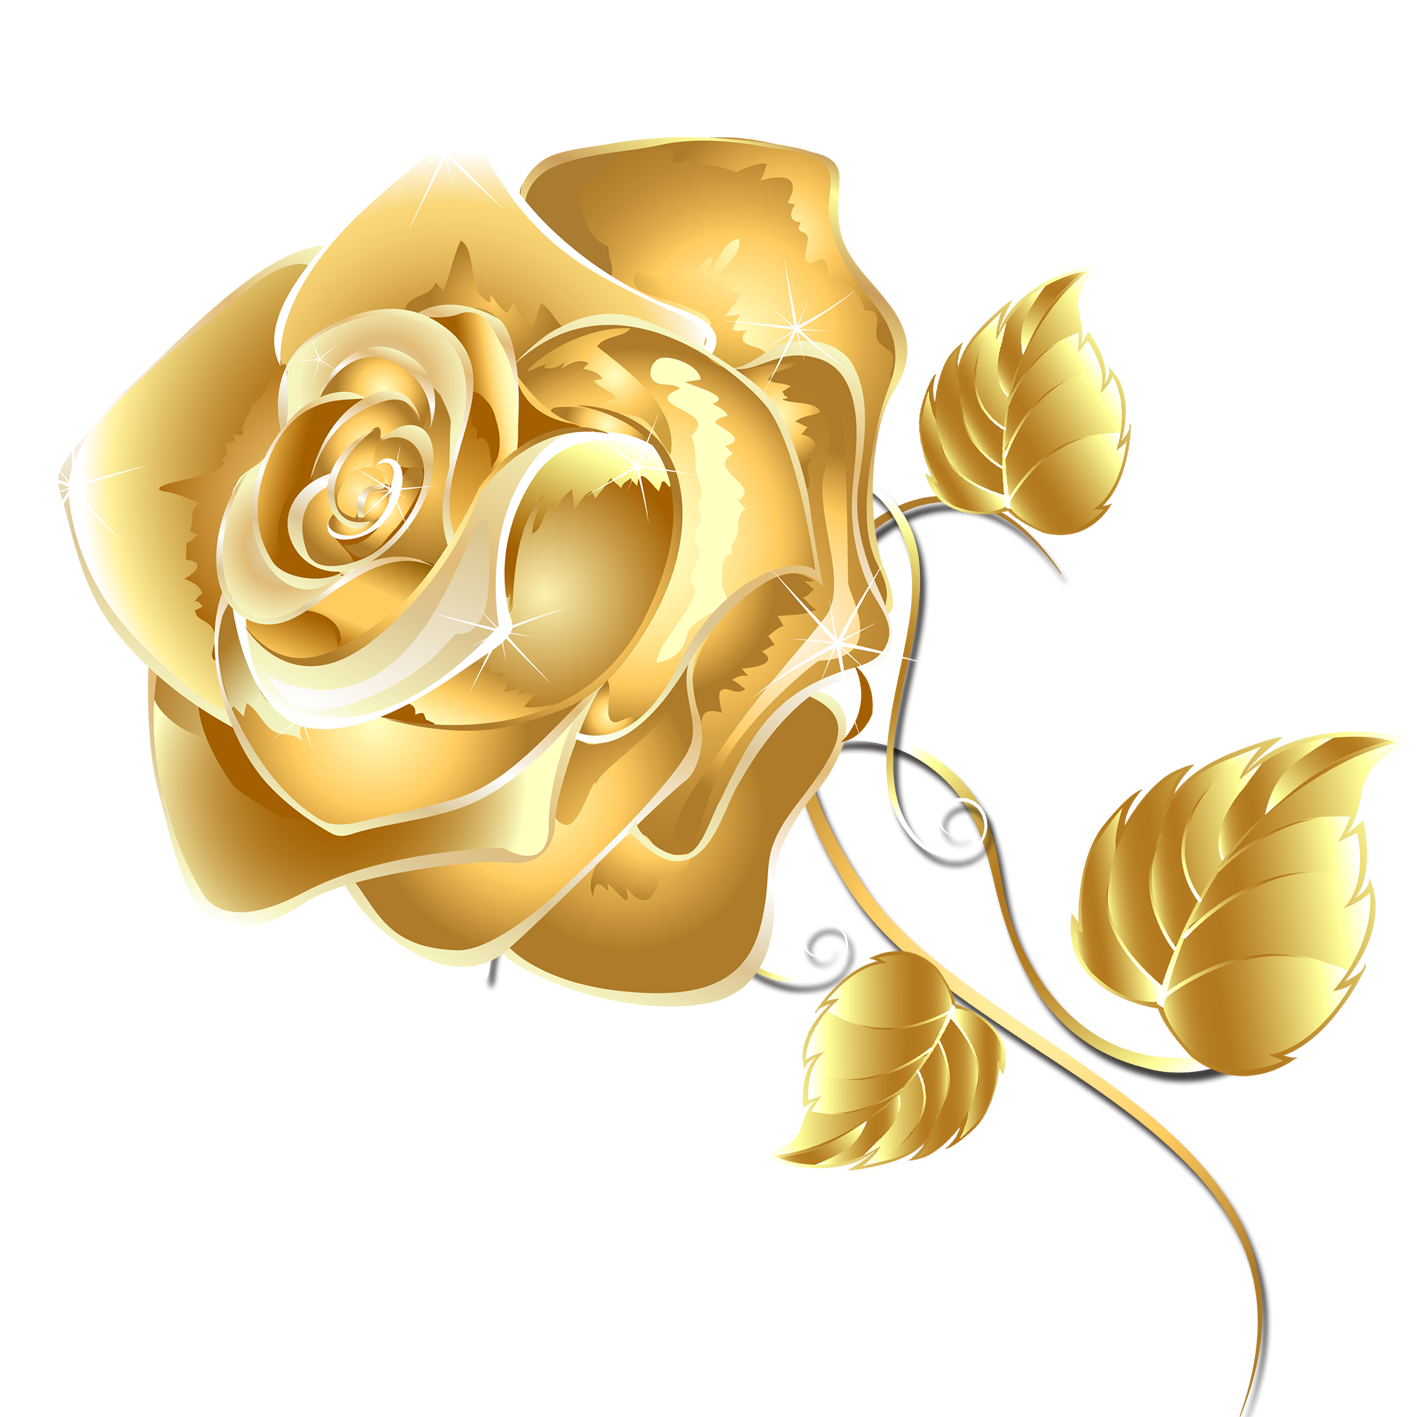 Download Flower Gold Package Rose Application Fashion ... (1417 x 1417 Pixel)